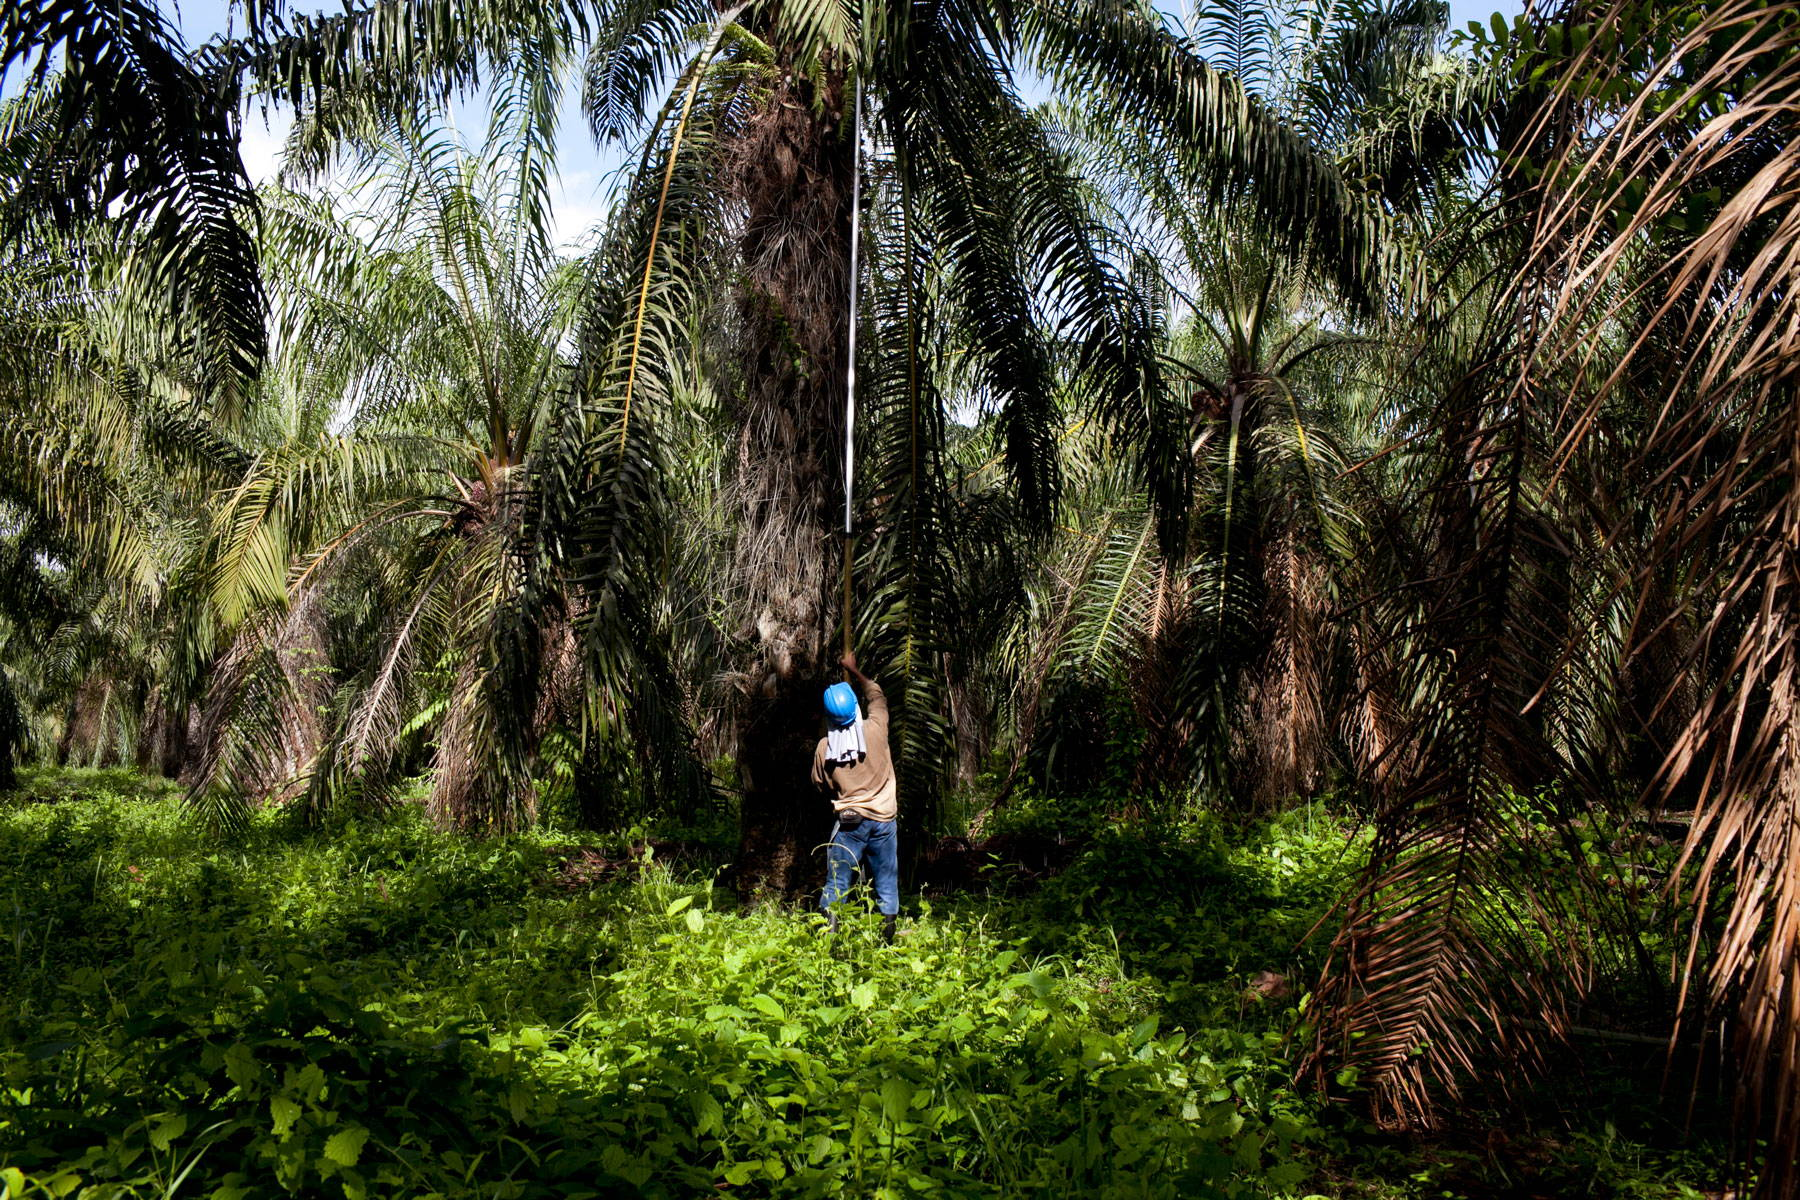 A laborer reaches up into a palm tree